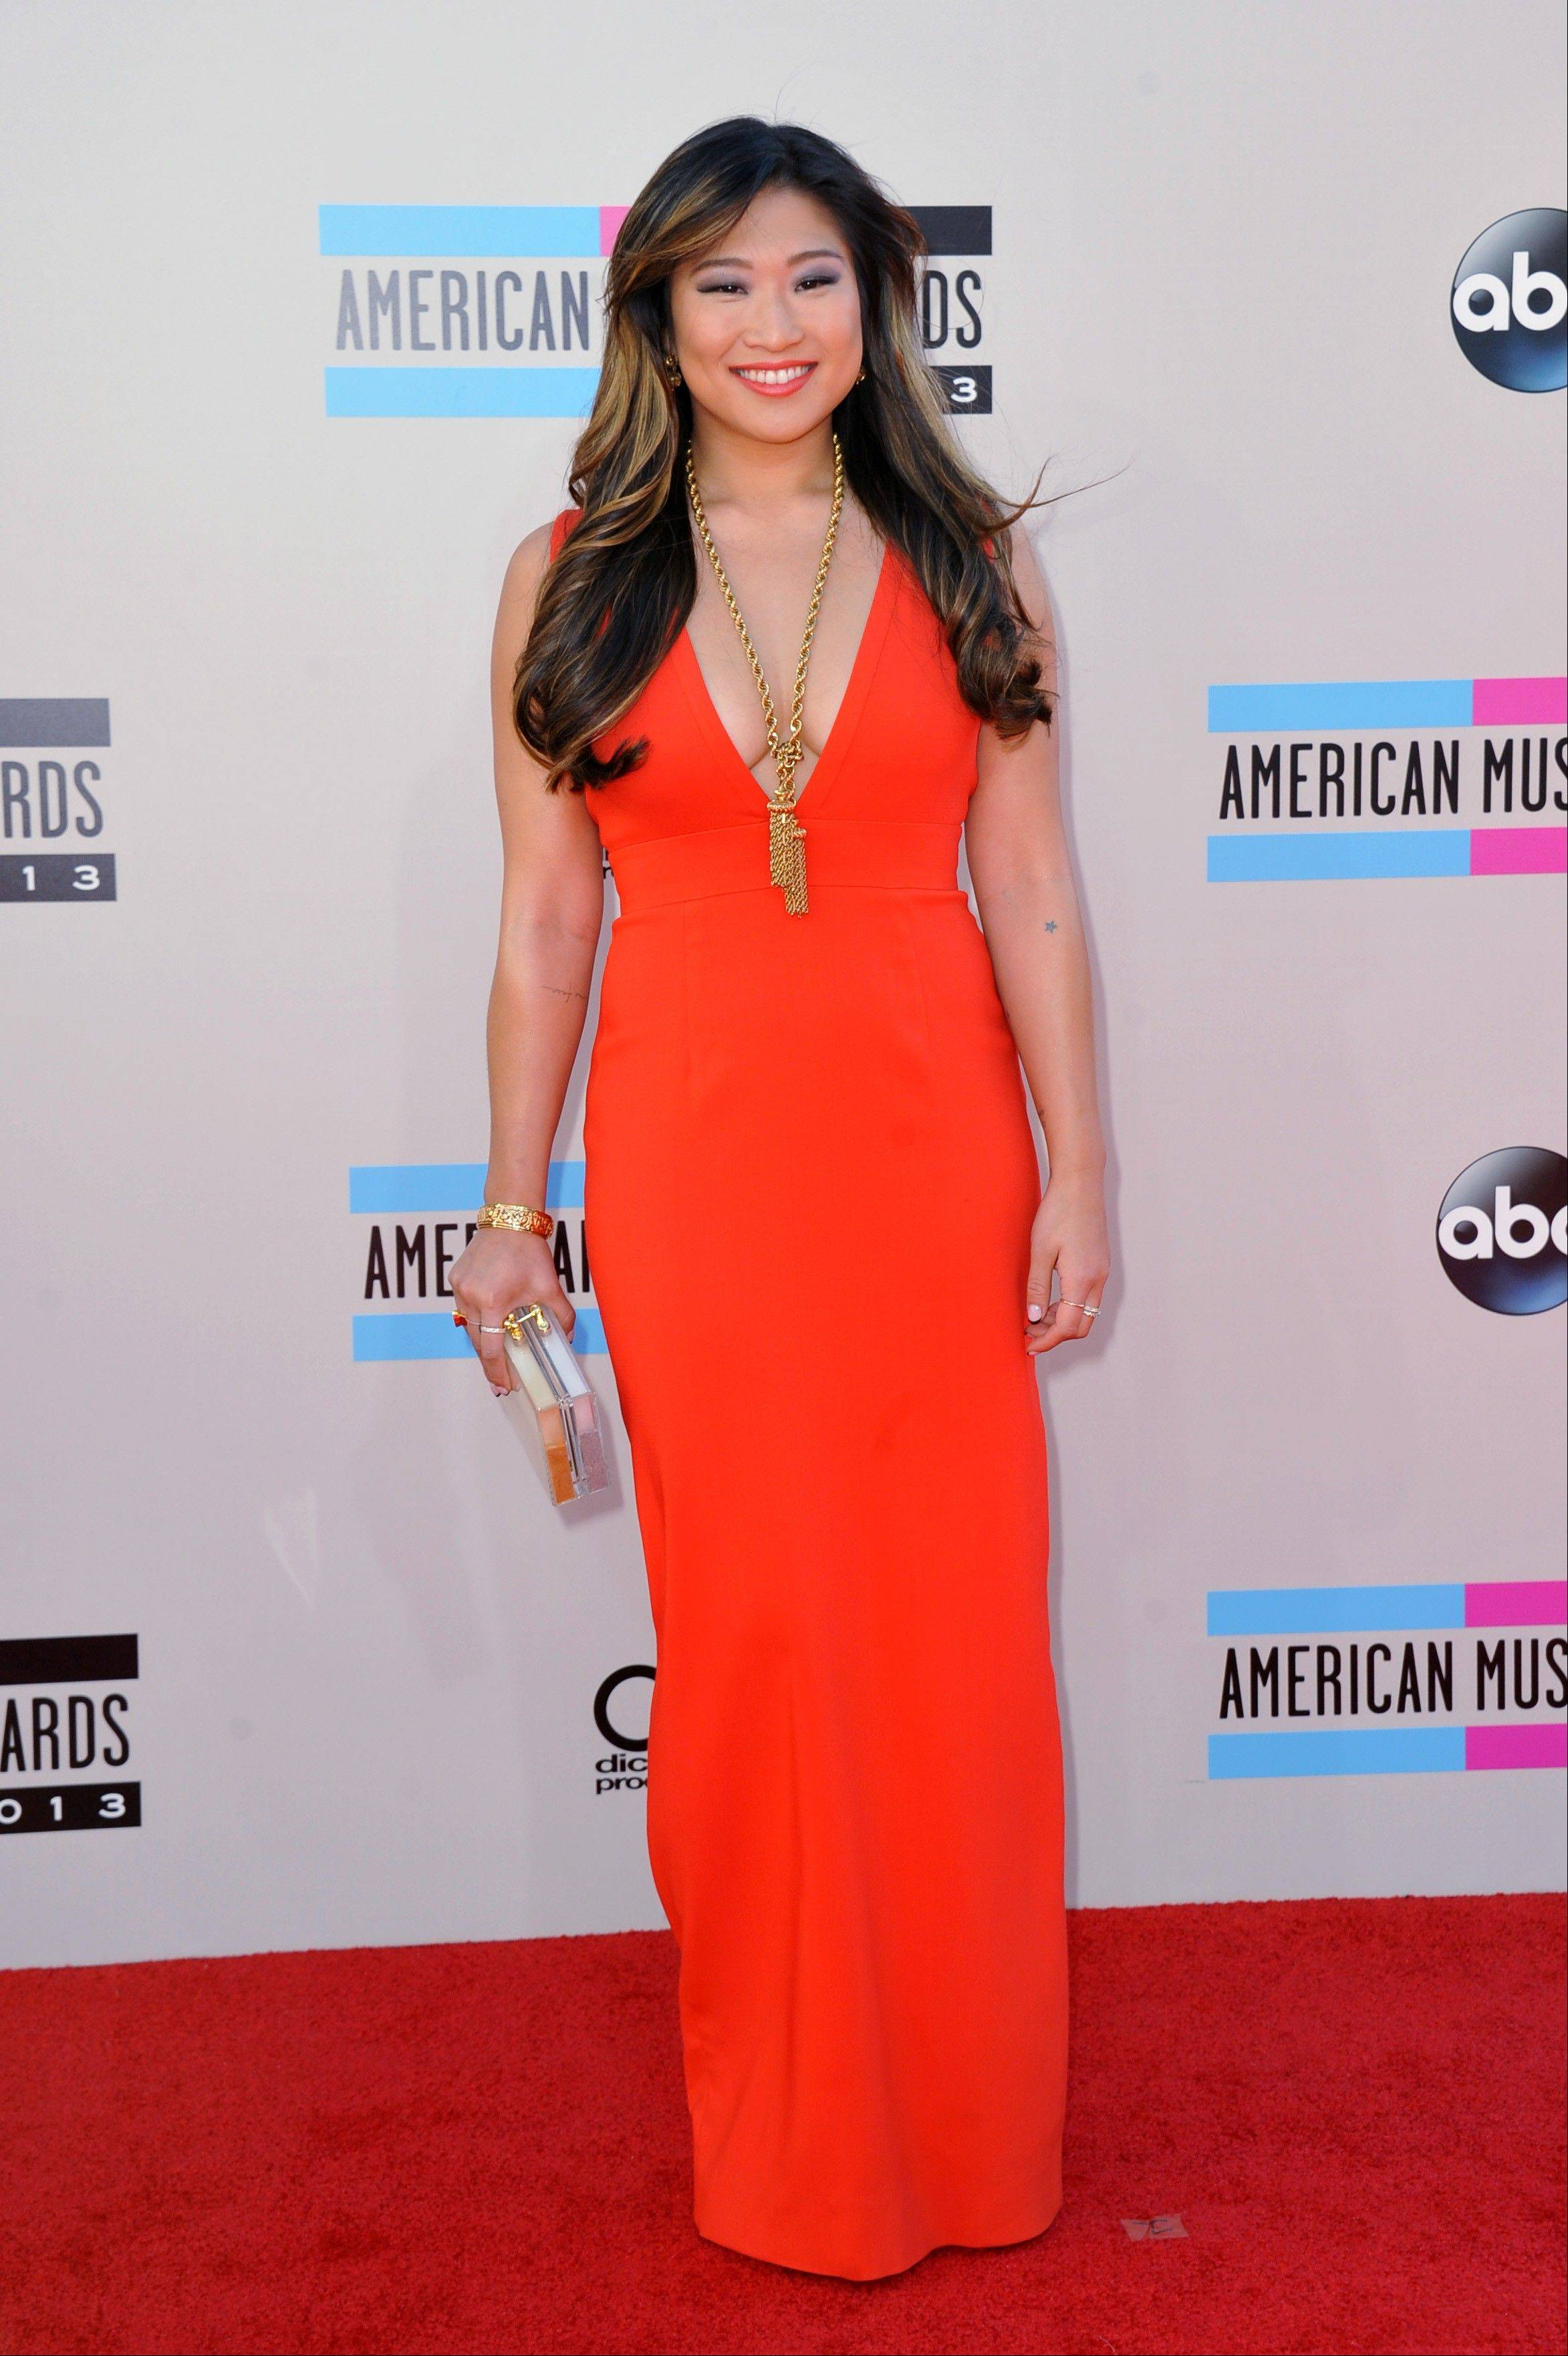 """Glee"" star Jenna Ushkowitz arrives at the American Music Awards."